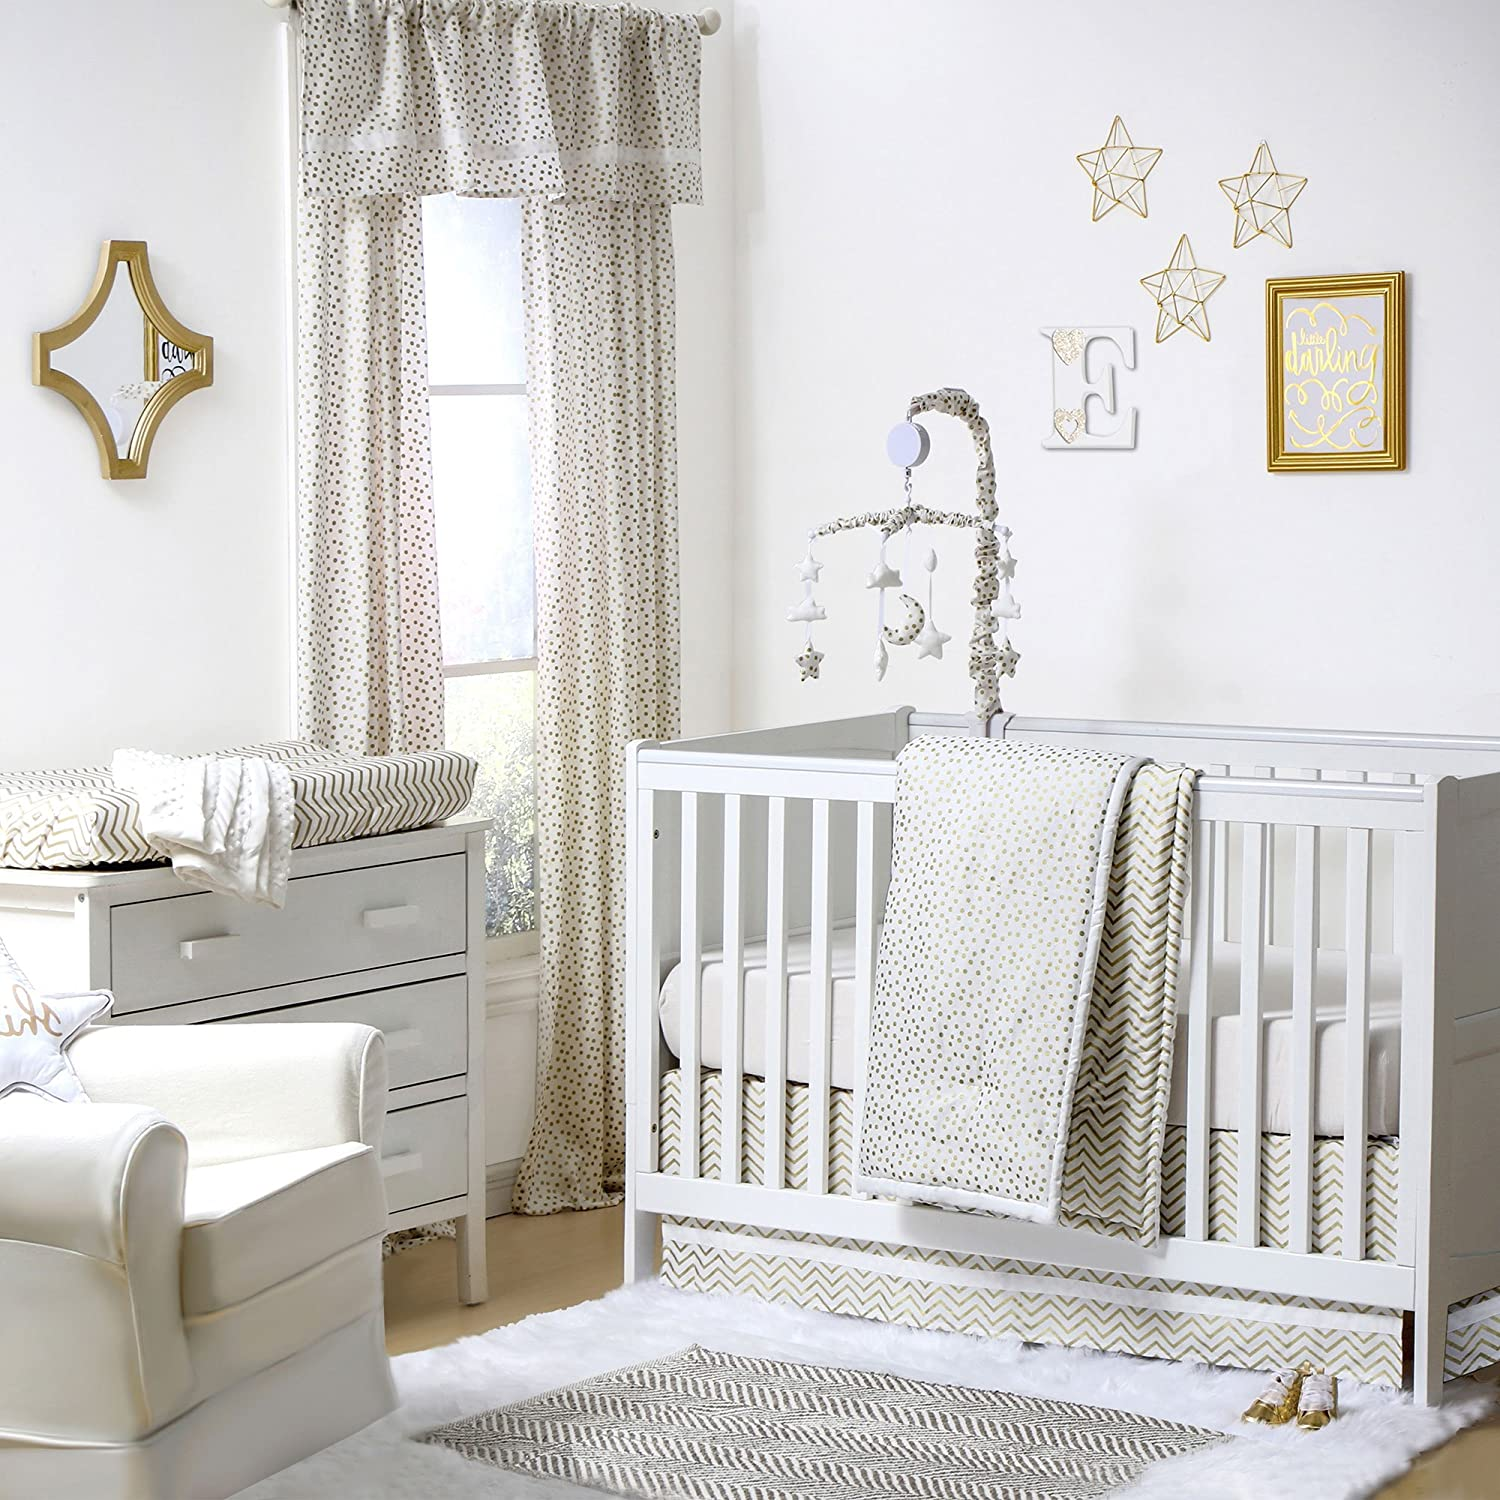 Gold Dot and Chevron Zig Zag 4 Piece Baby Crib Bedding Set by The Peanut Shell by The Peanut Shell